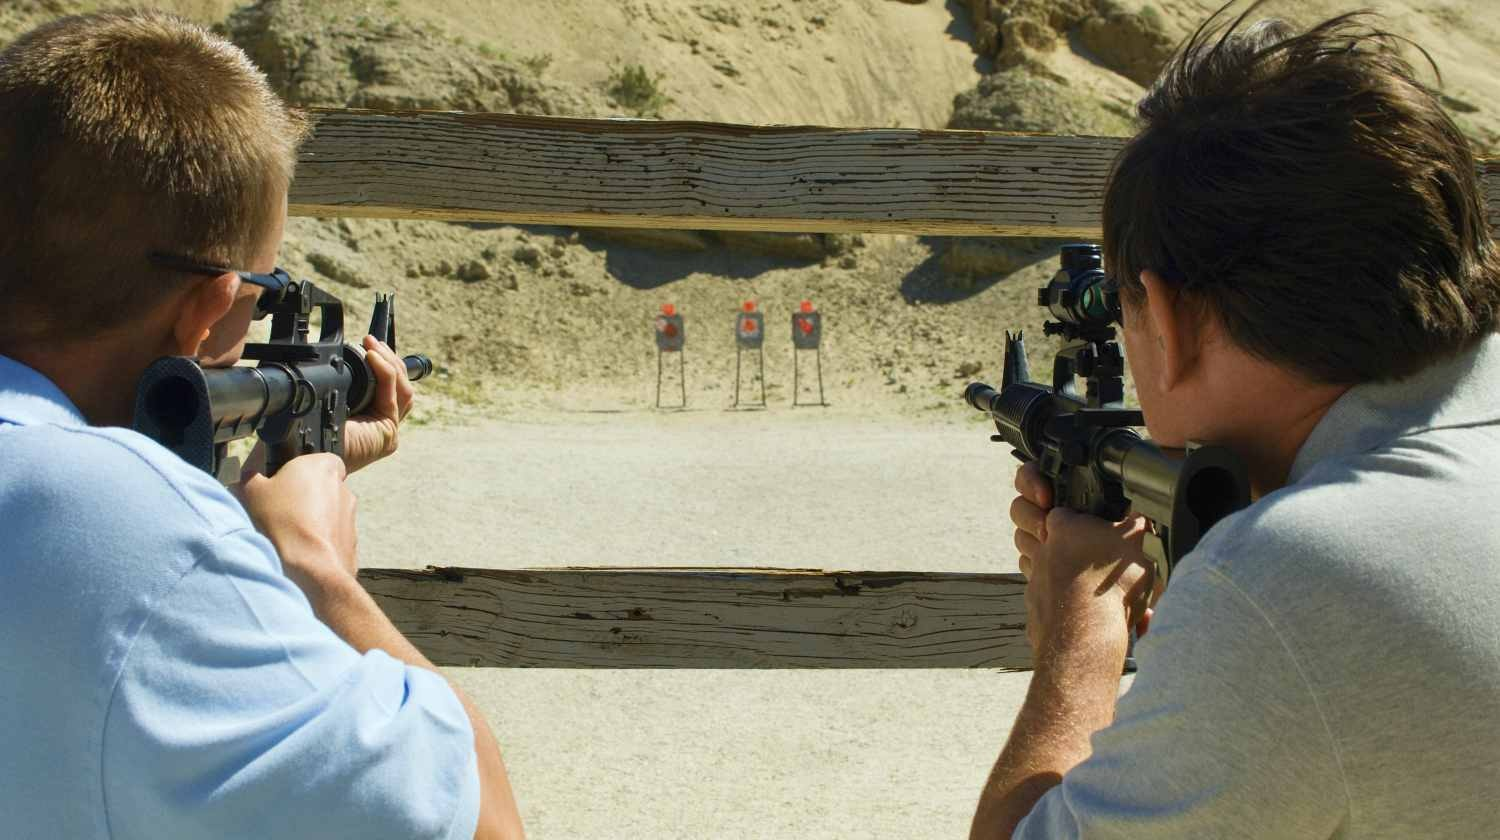 Best Ways to Hone Your Skills Shooting at a Range